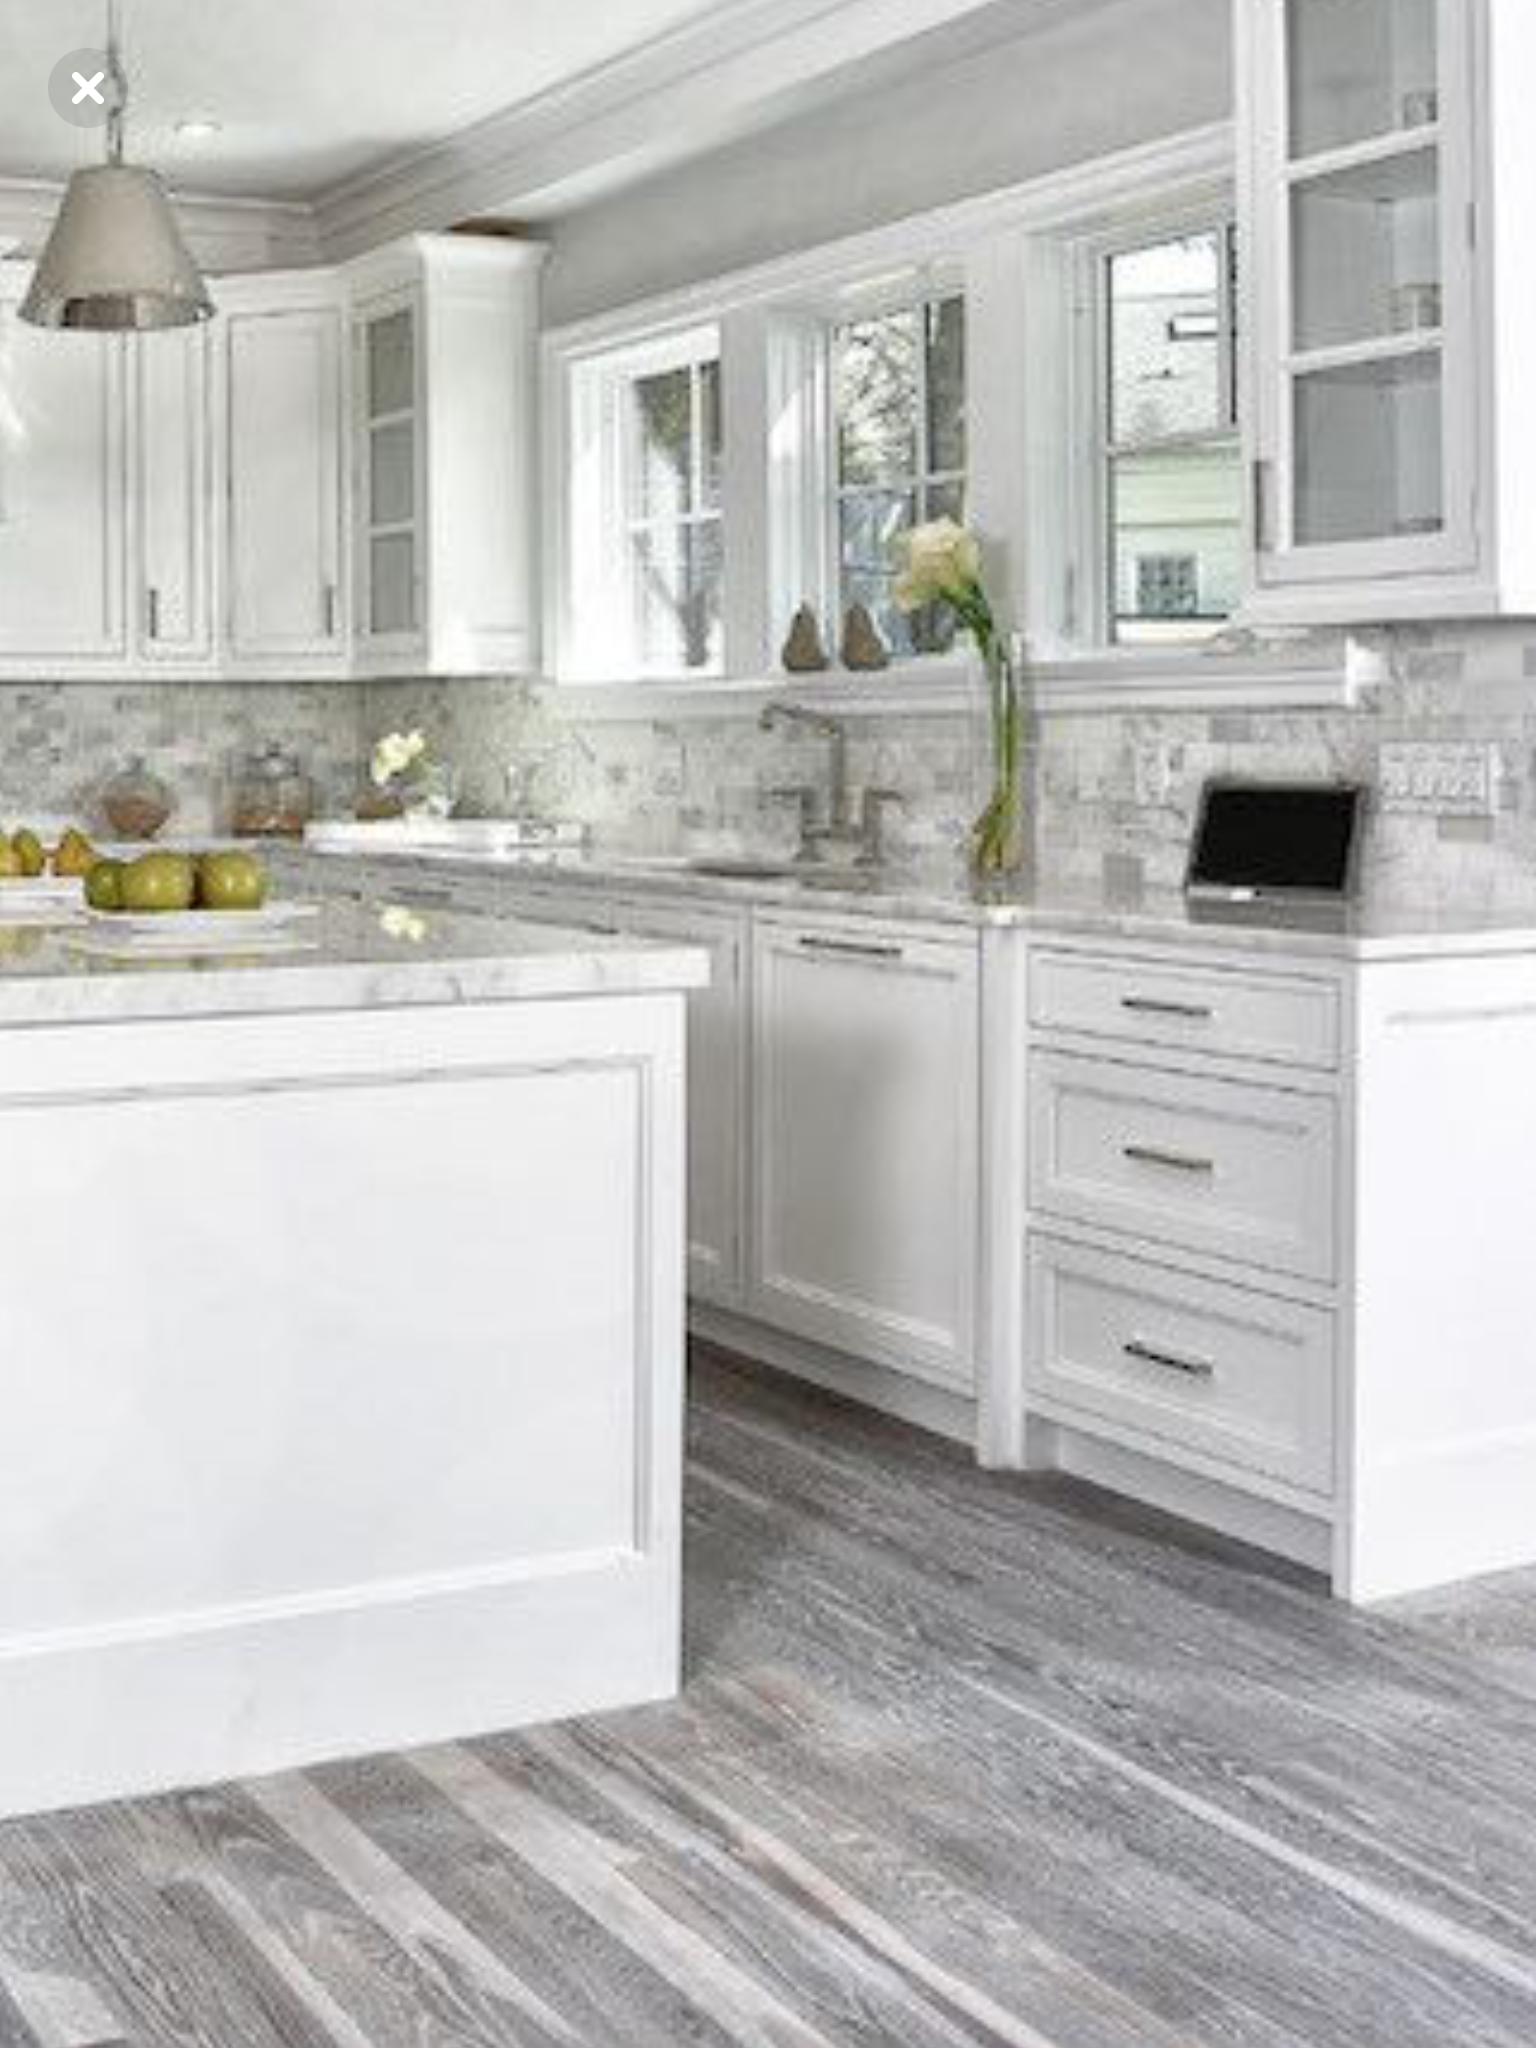 Grey Floors White Cabinets Grey Kitchen Walls Grey Kitchen Walls White Cabinets Grey Kitchen Floor